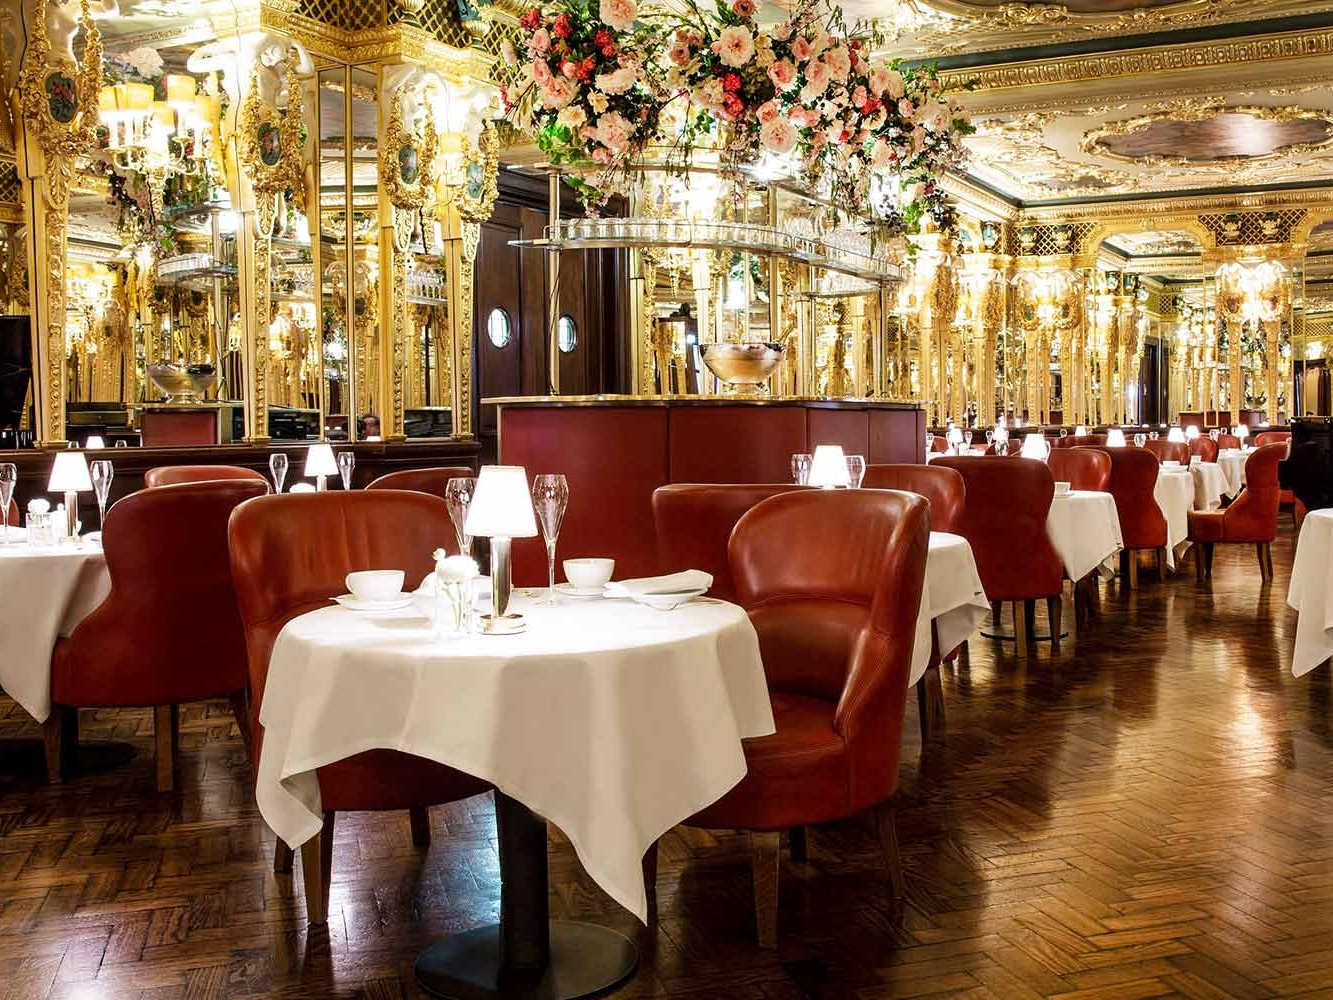 Luxury afternoon tea London | Hotel Café Royal